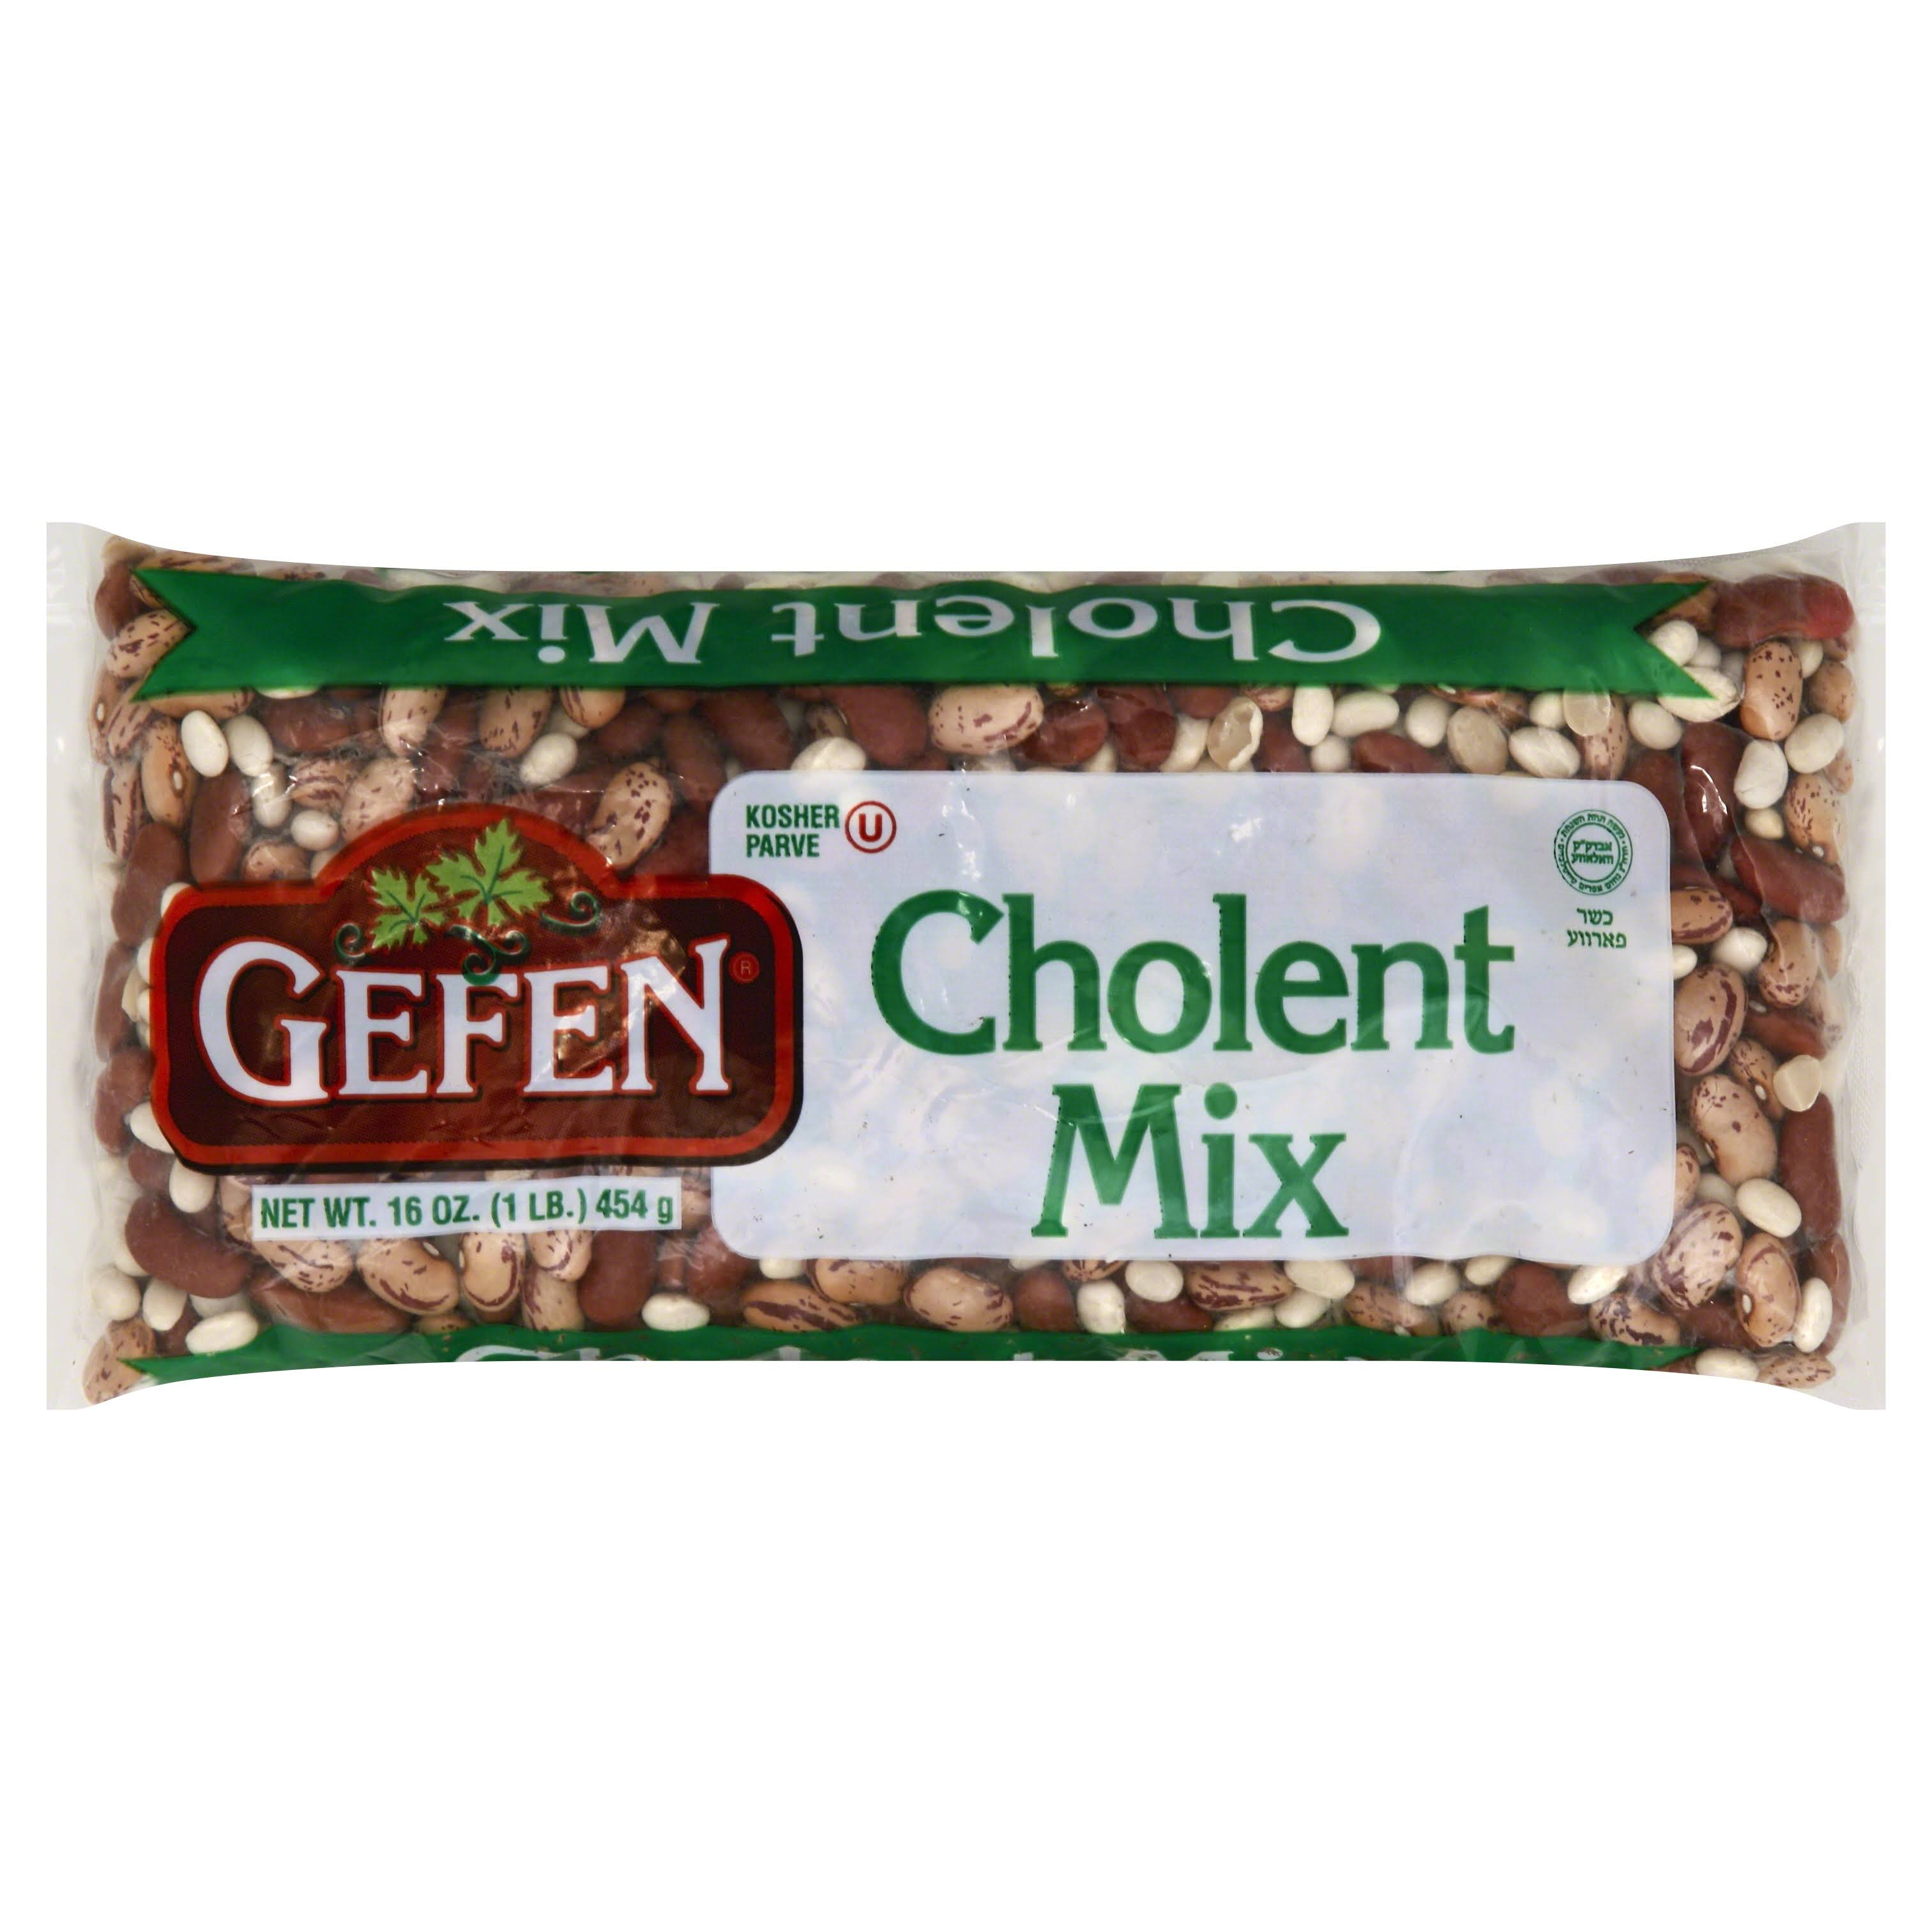 Gefen Cholent Mix - 16 oz